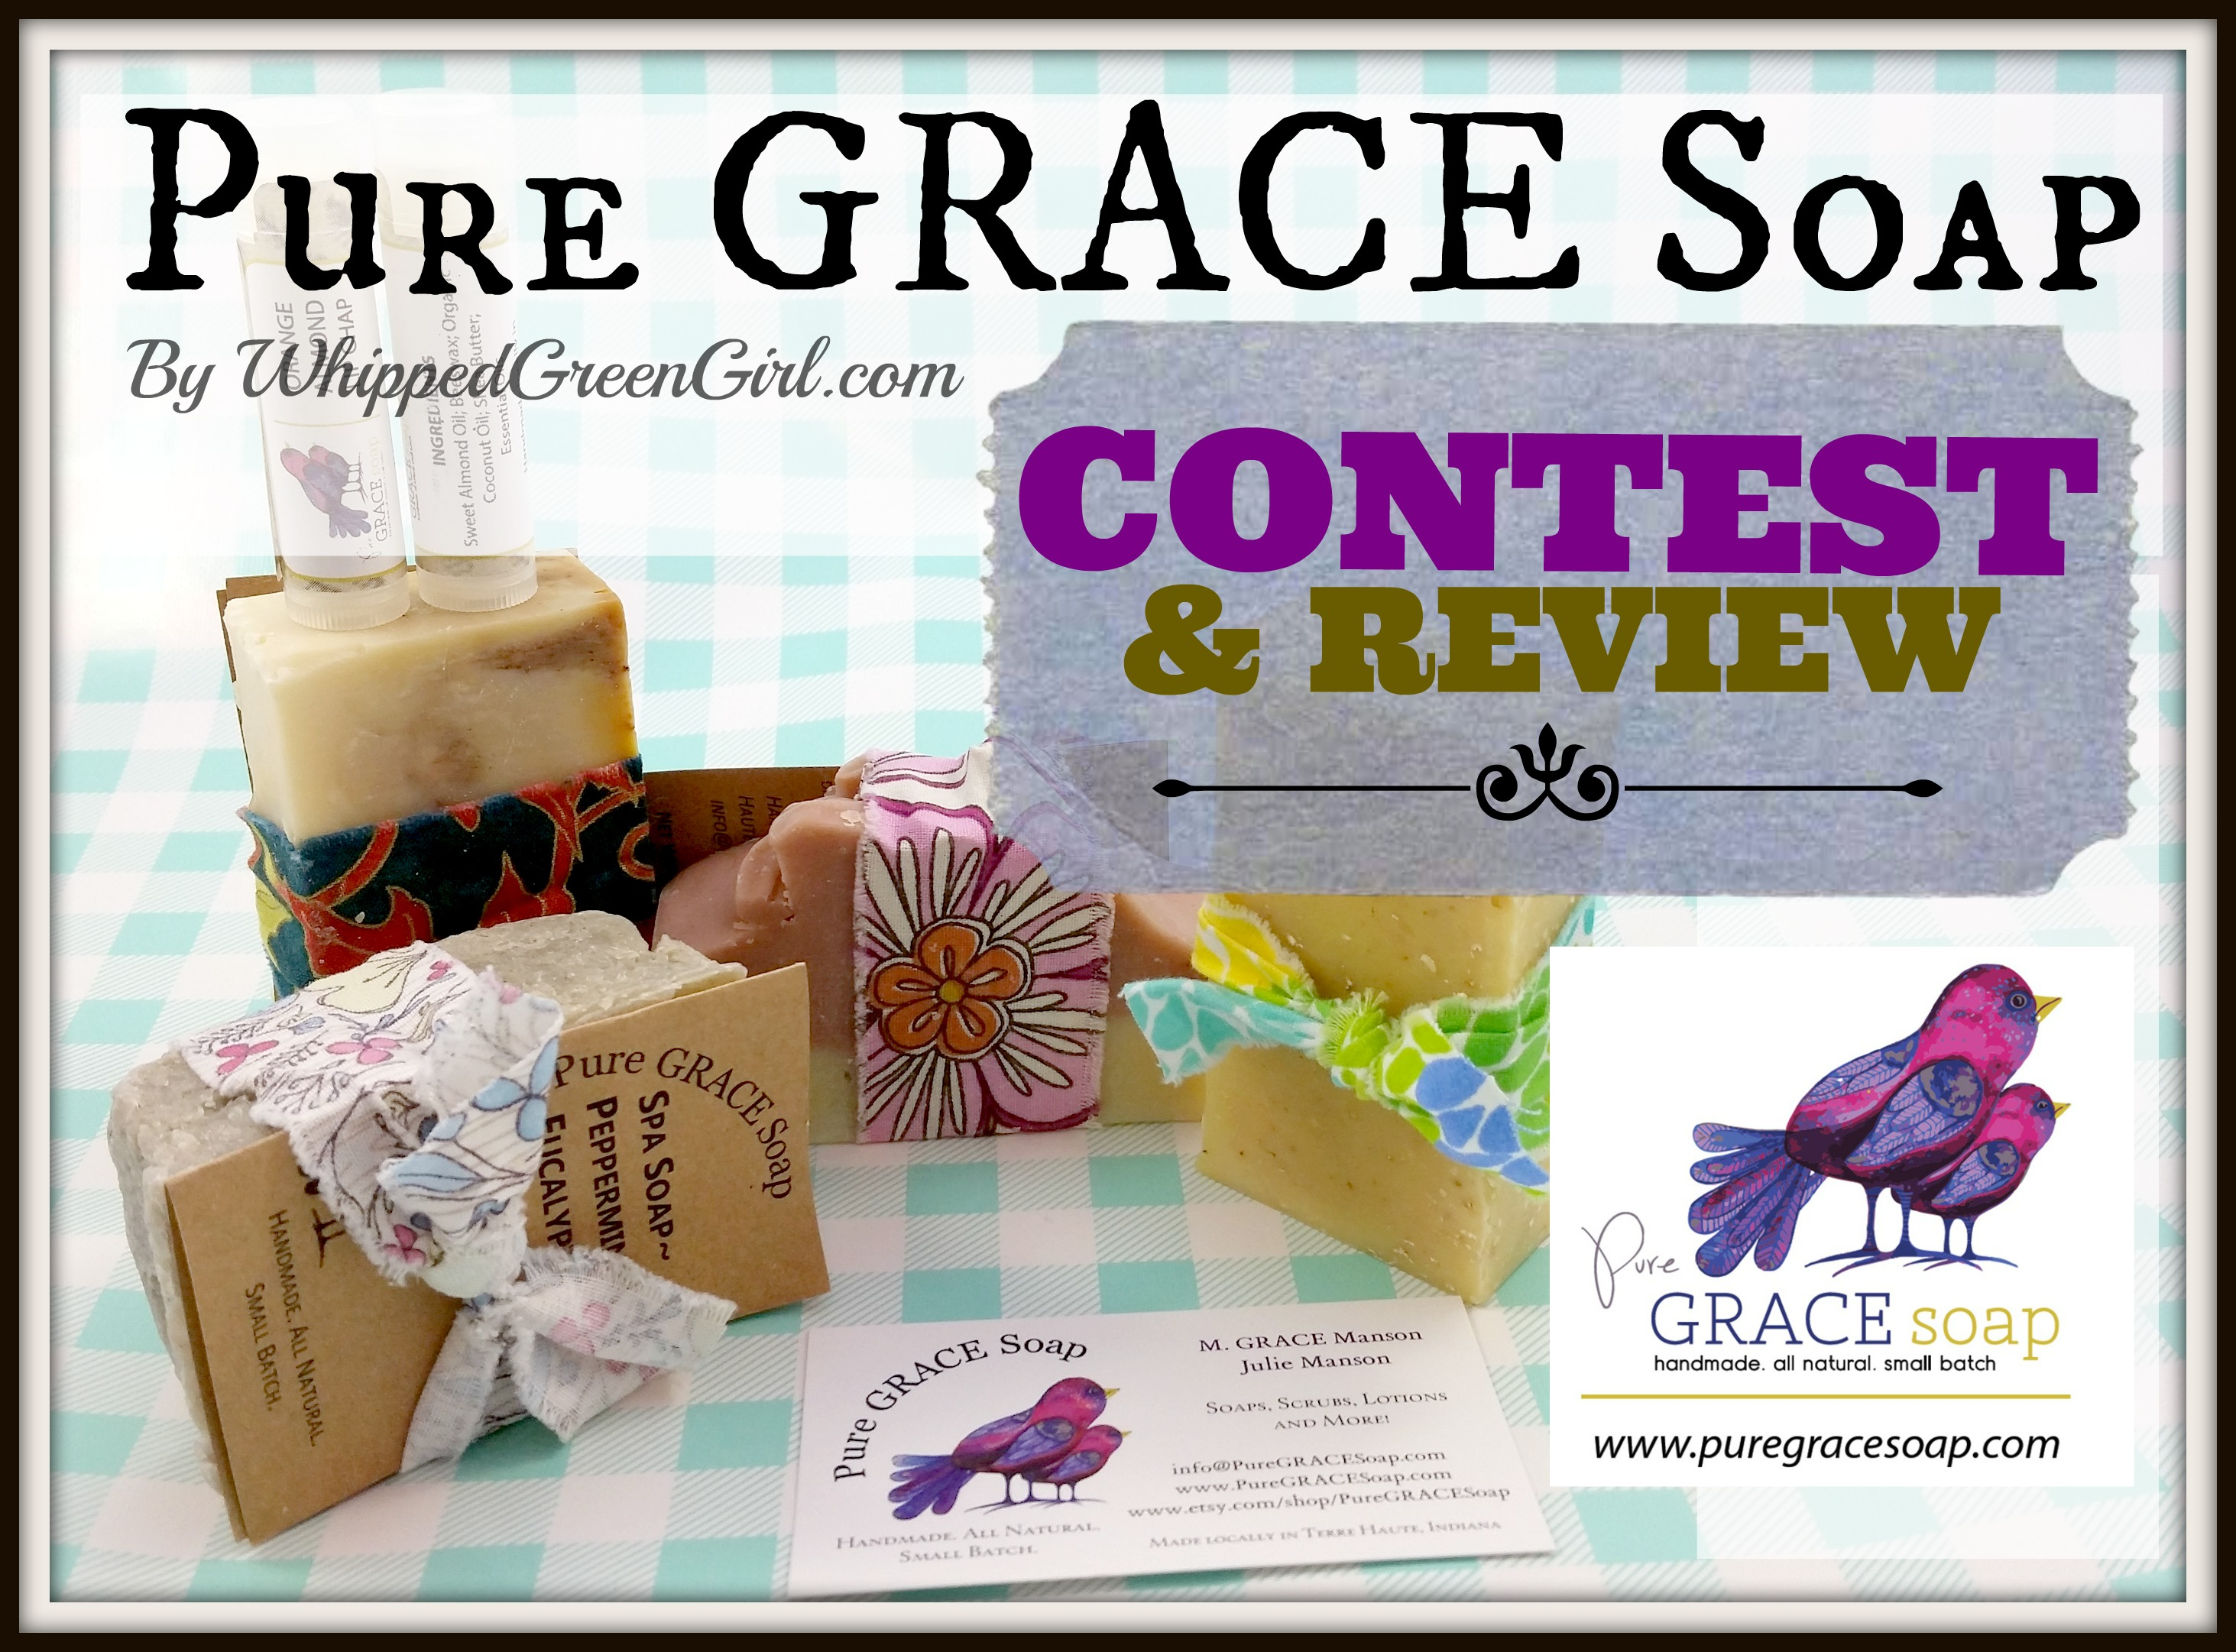 PureGraceSoap.com Review